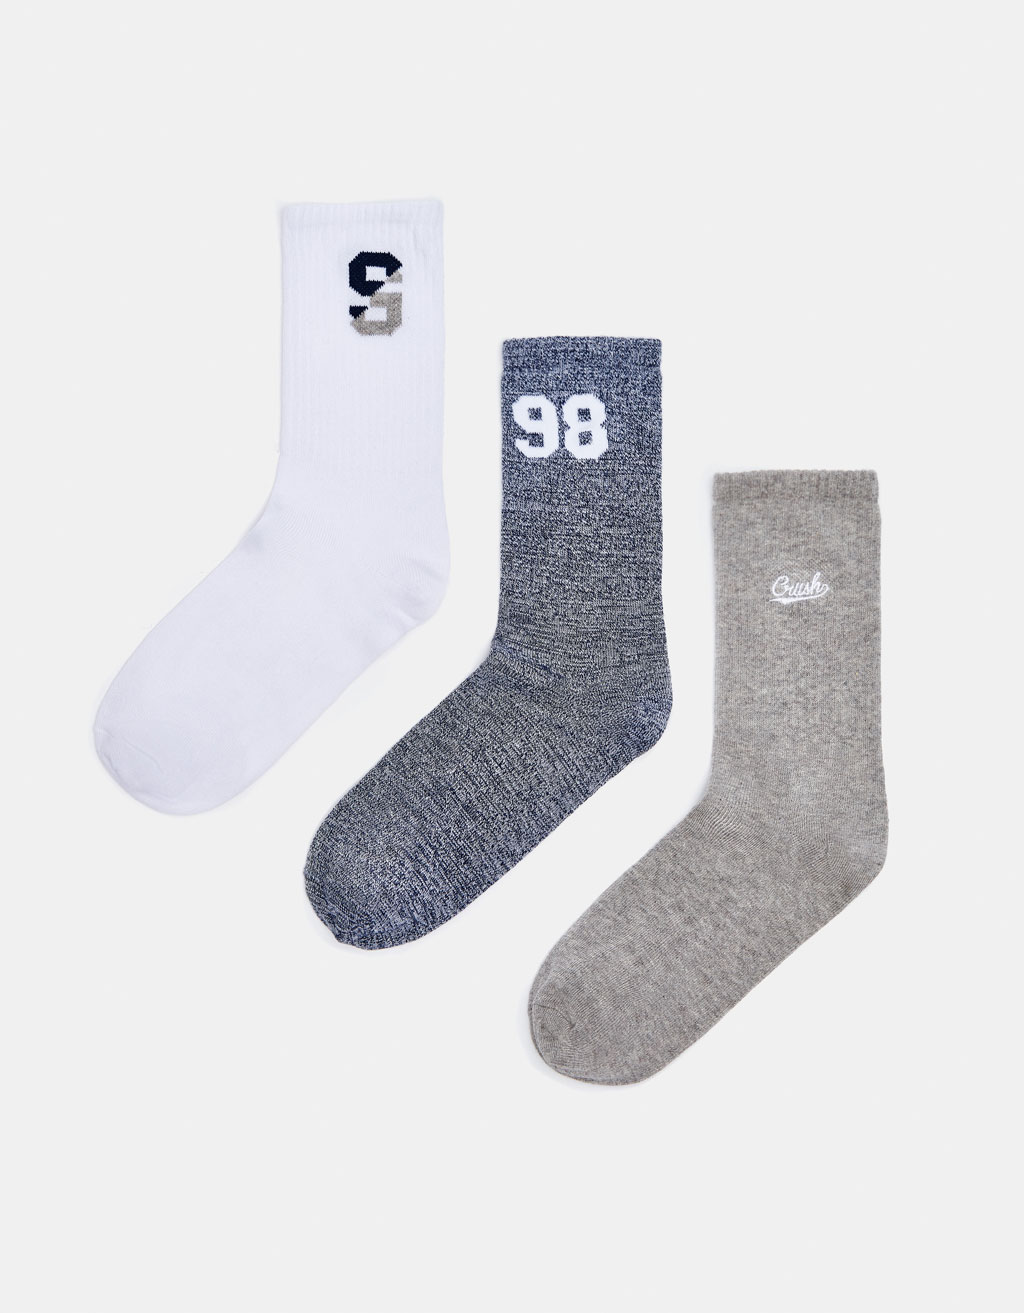 3-pack of old-school Join Life socks.